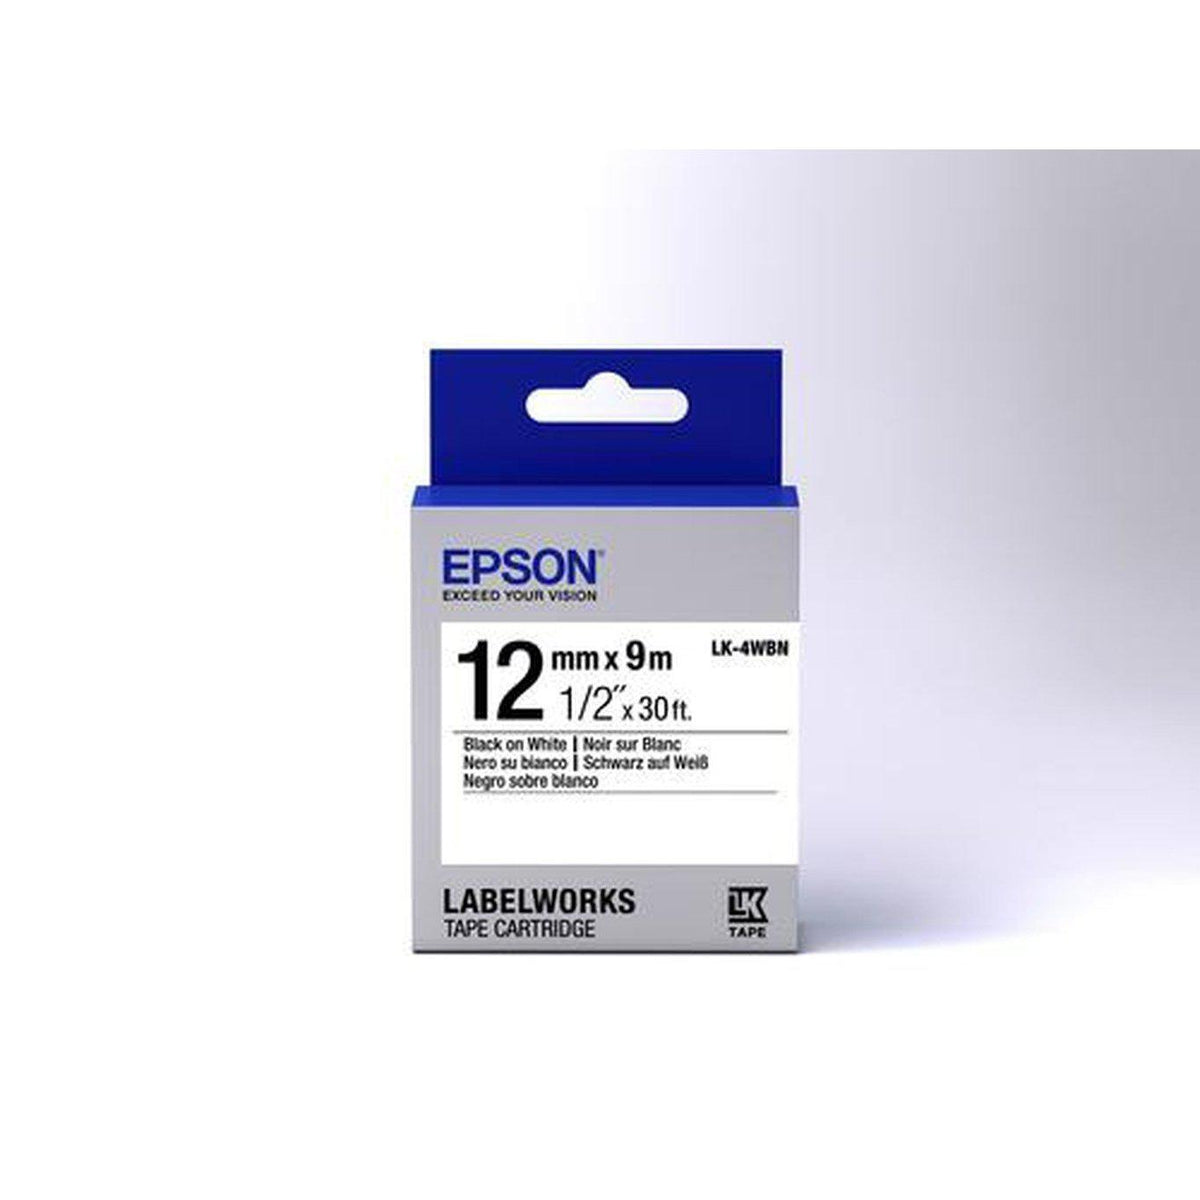 Epson Label Cartridge Standard LK-4WBN 12mm x 9m, Black on White | C53S654021 Consumable Epson